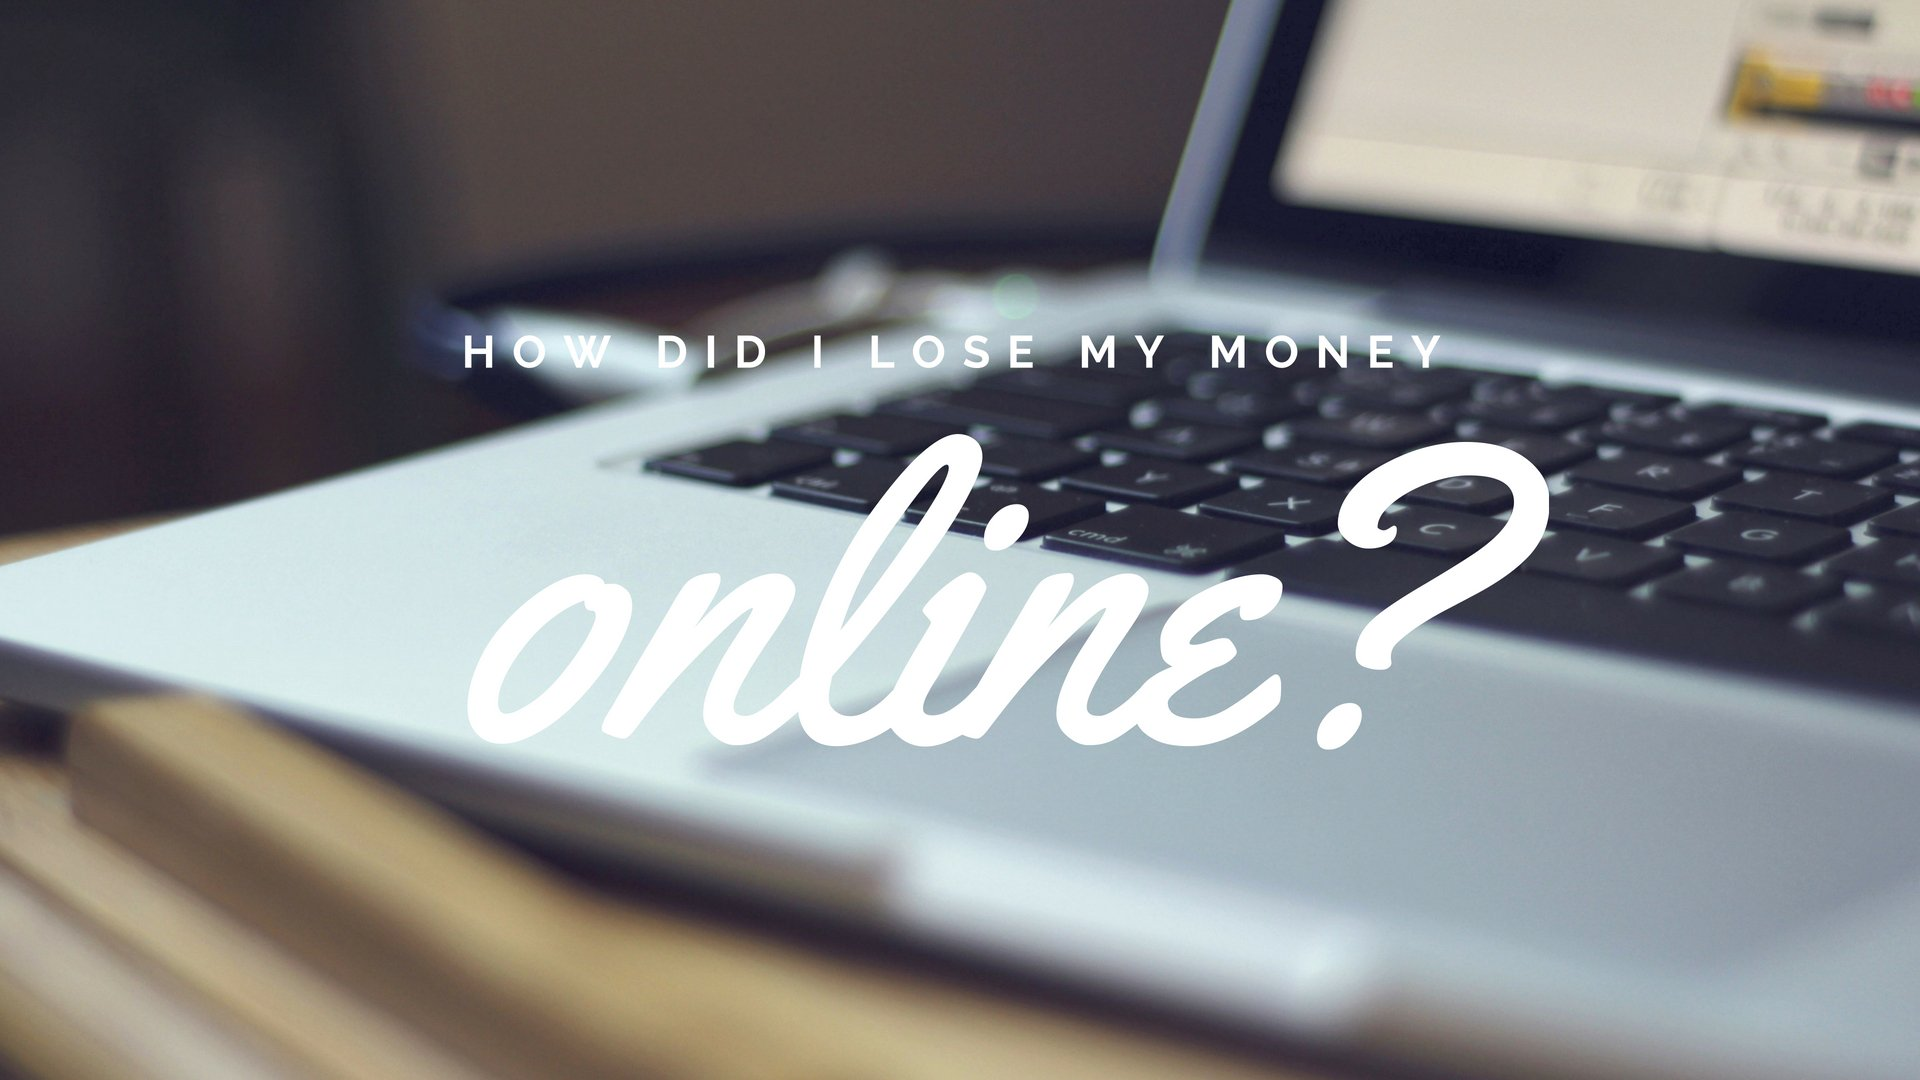 How Did I Lose My Money Online?